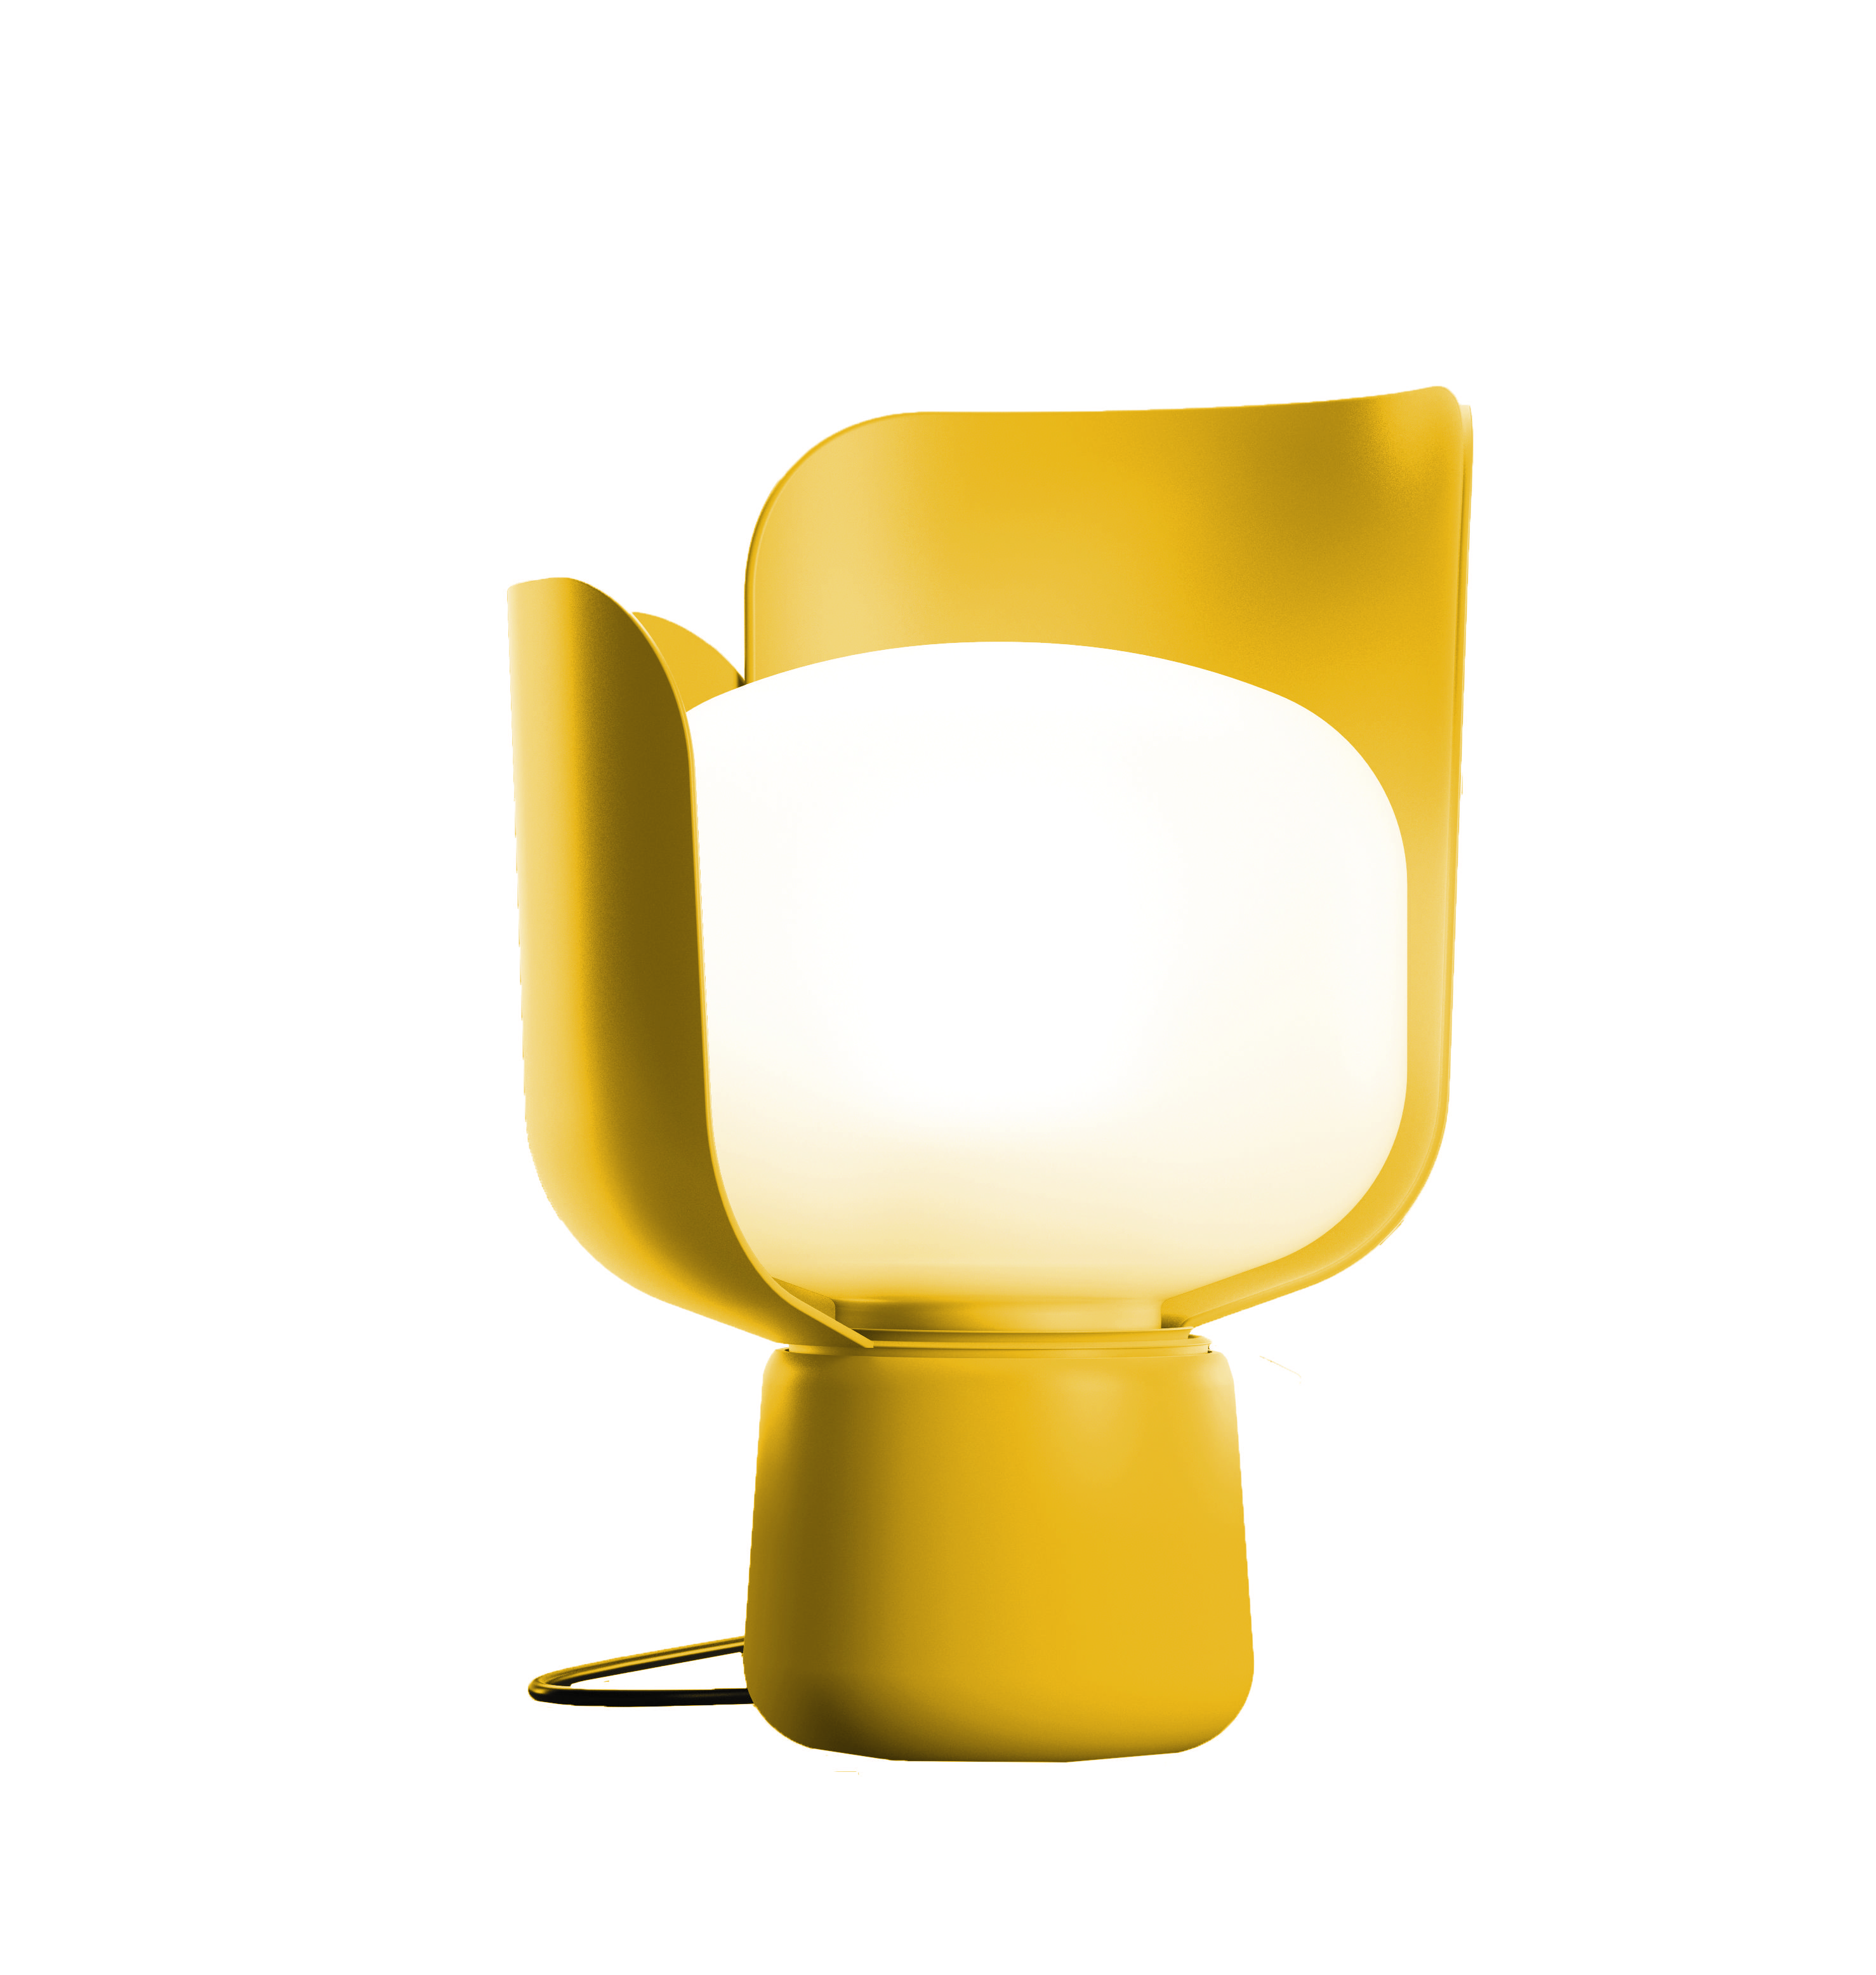 Blom By Andreas Engesvik Yellow Colour Friendly Compact Thanks To Its Petals Blom Answrs The Needs Of Home Dwe Candeeiros De Mesa Luminaria Lampadas Frias